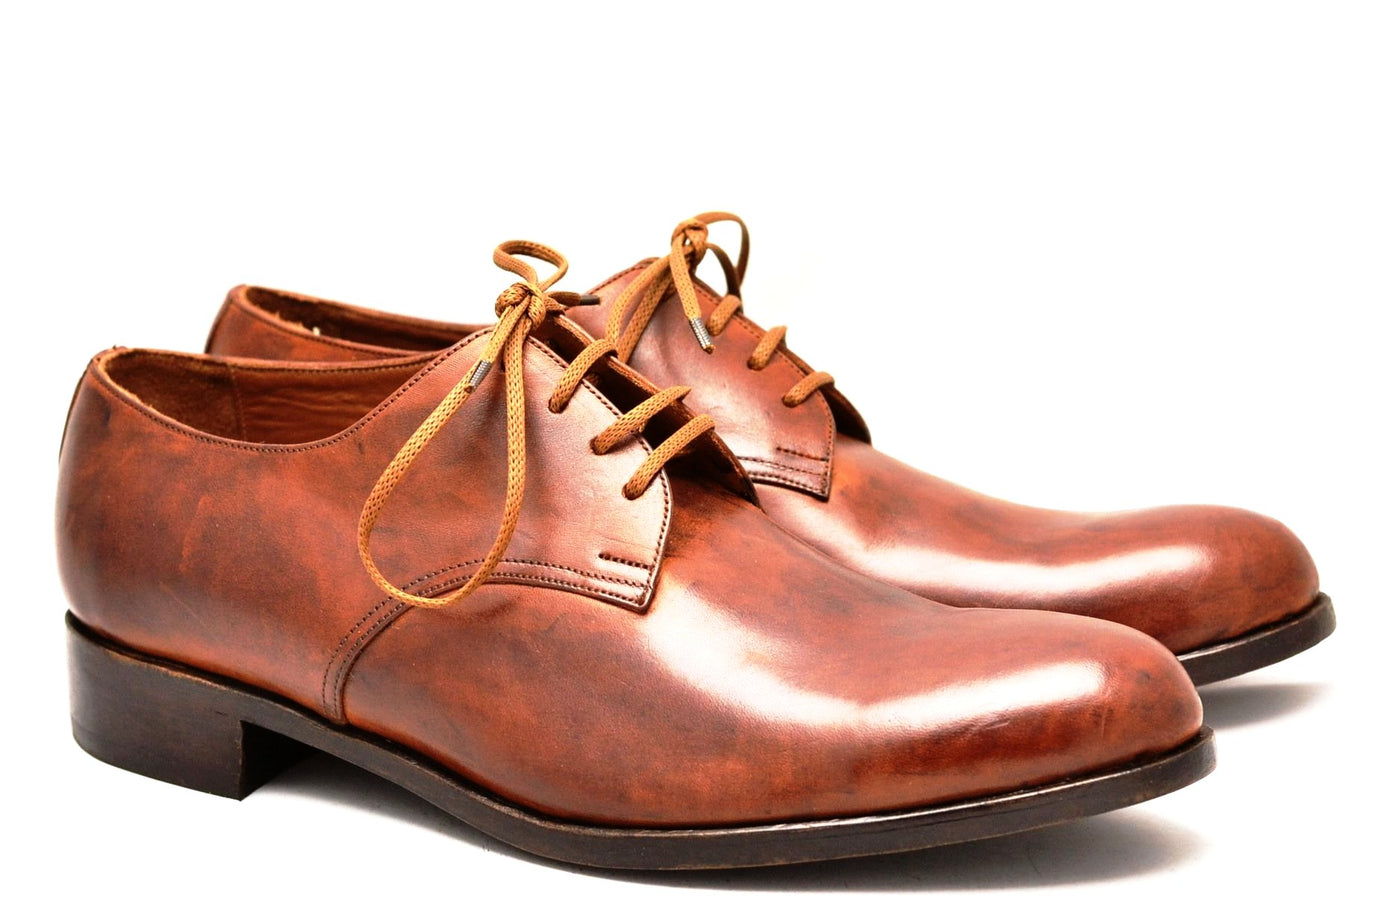 Derby shoe |Antique cognac cordovan